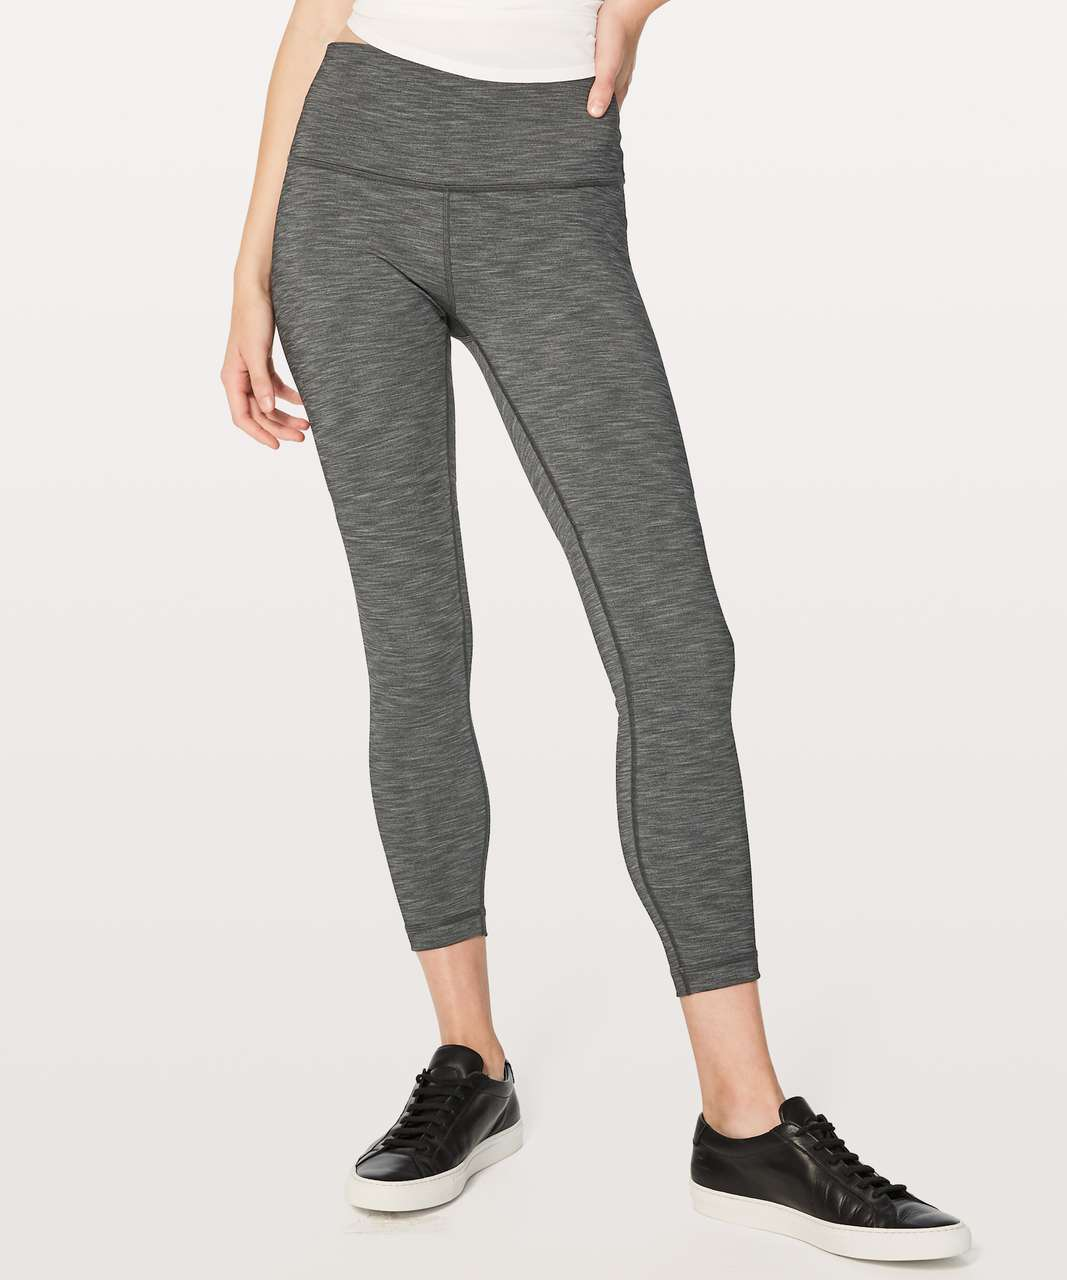 b76fb90b65 Lululemon Wunder Under Hi-Rise 7/8 Tight *Full-On Luxtreme 25 ...